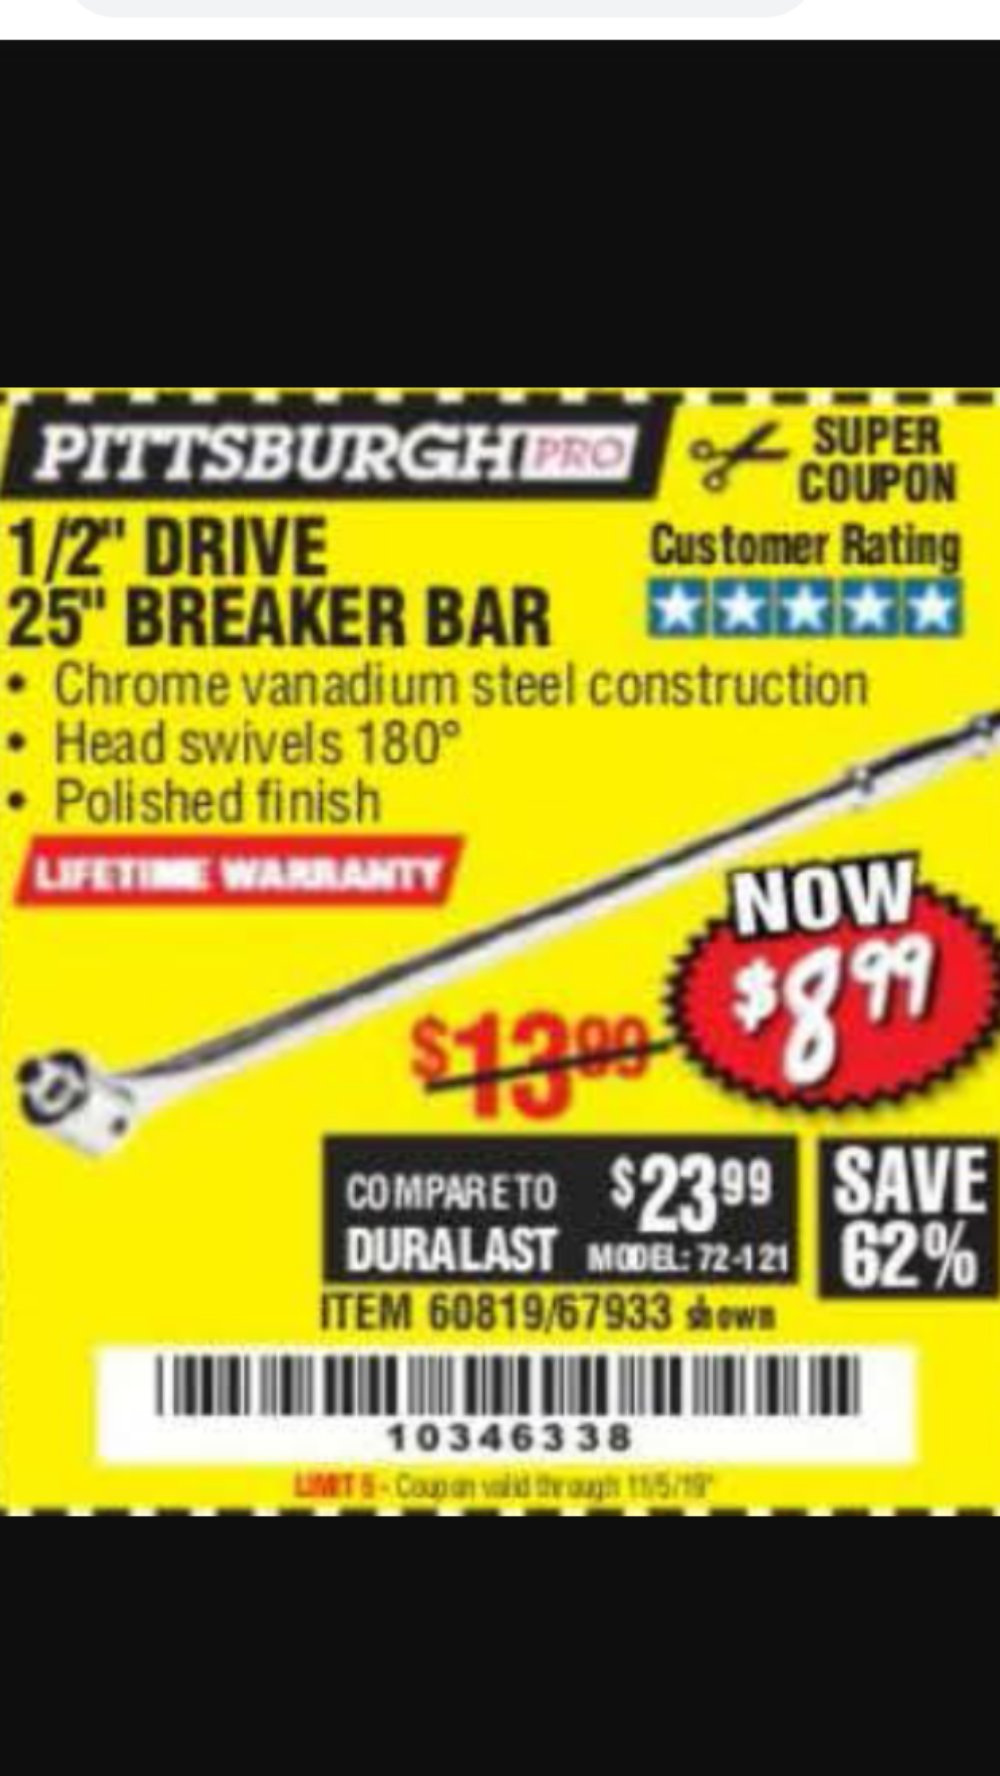 Harbor Freight Coupon, HF Coupons - Pittsburgh Pro 1/2